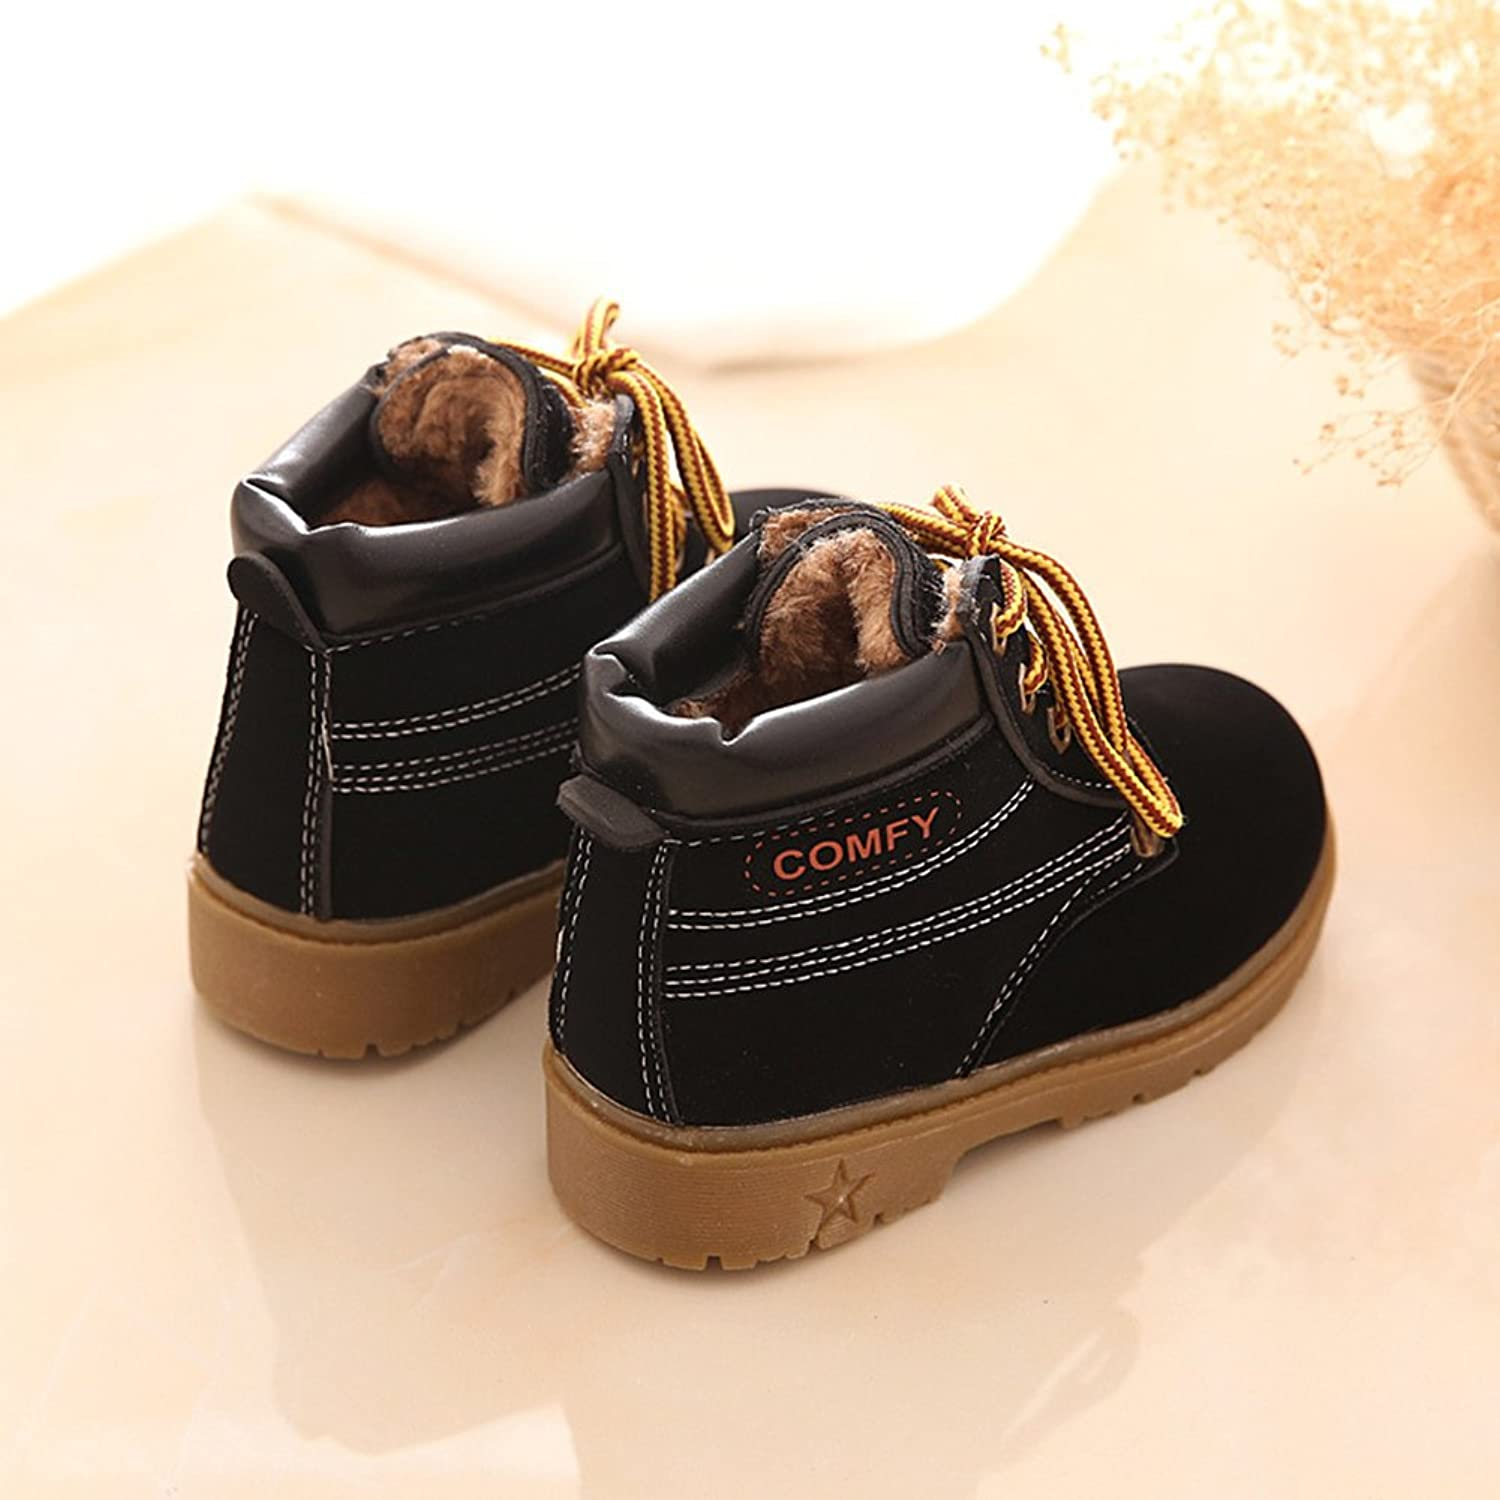 Winter Kids Snow Boots Ankle Boots - hibote Boys /Girls Martin Boots With Warm  Lining Snow Winter Boots Rubber Sole Lace-up Non-Slip Shoes: Amazon.co.uk:  ...